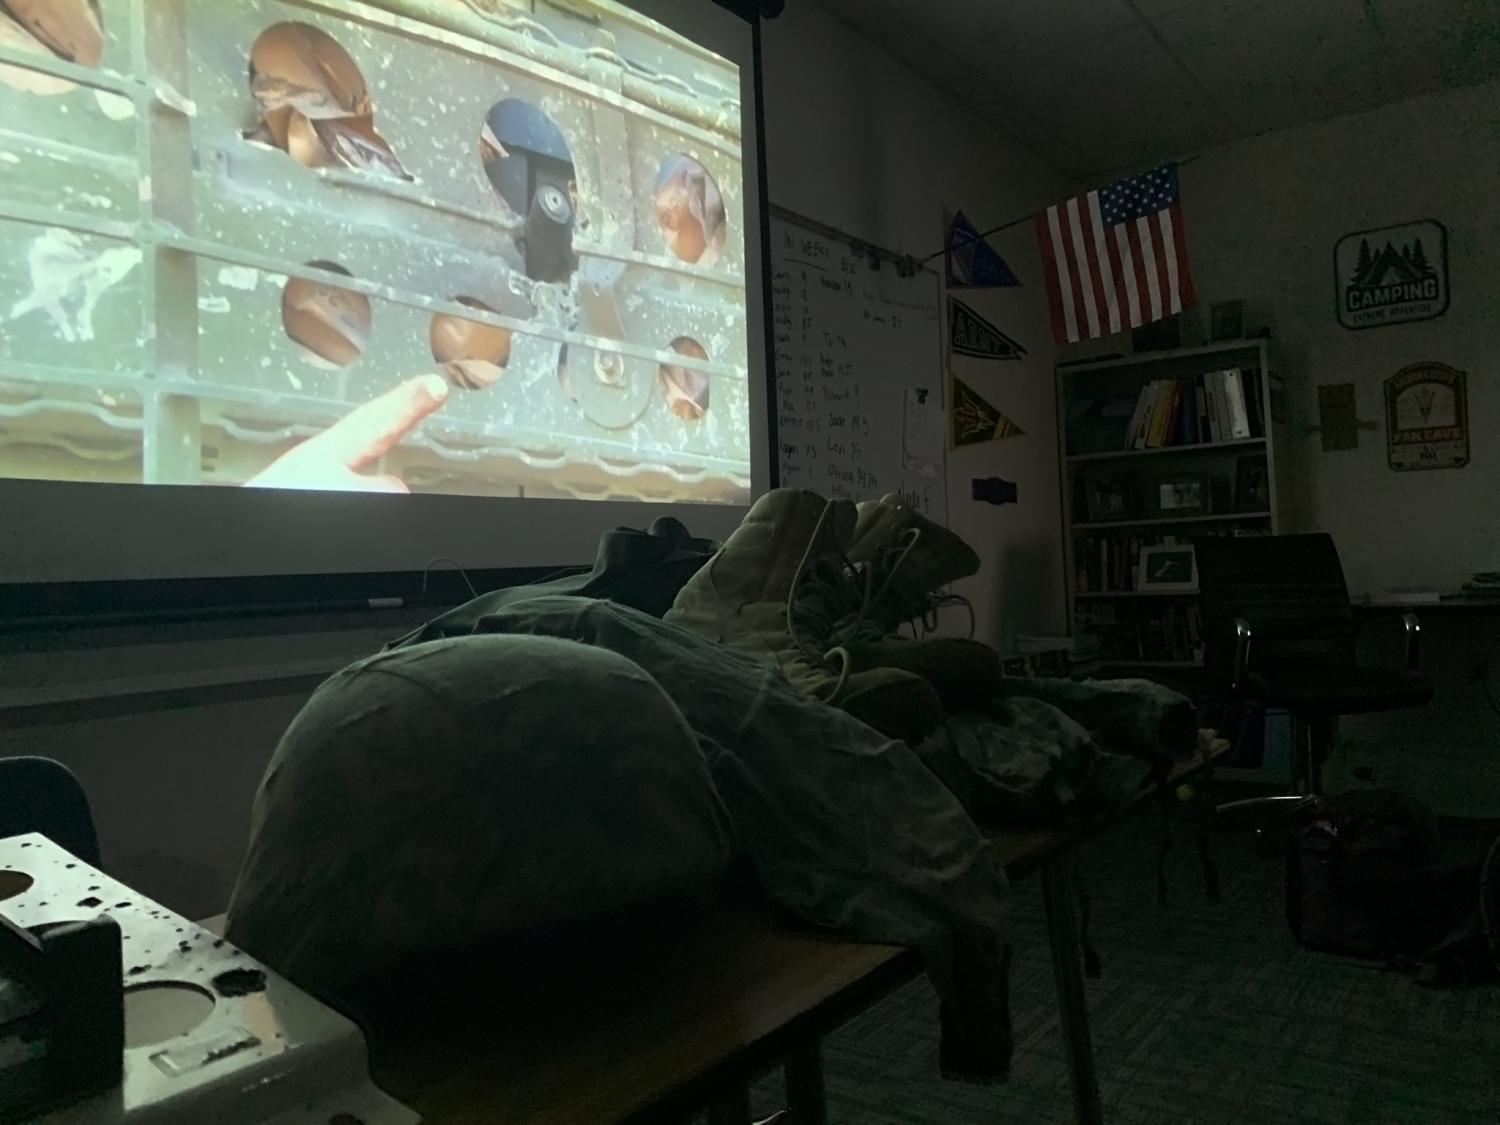 James shares a slideshow of photos depicting his military service